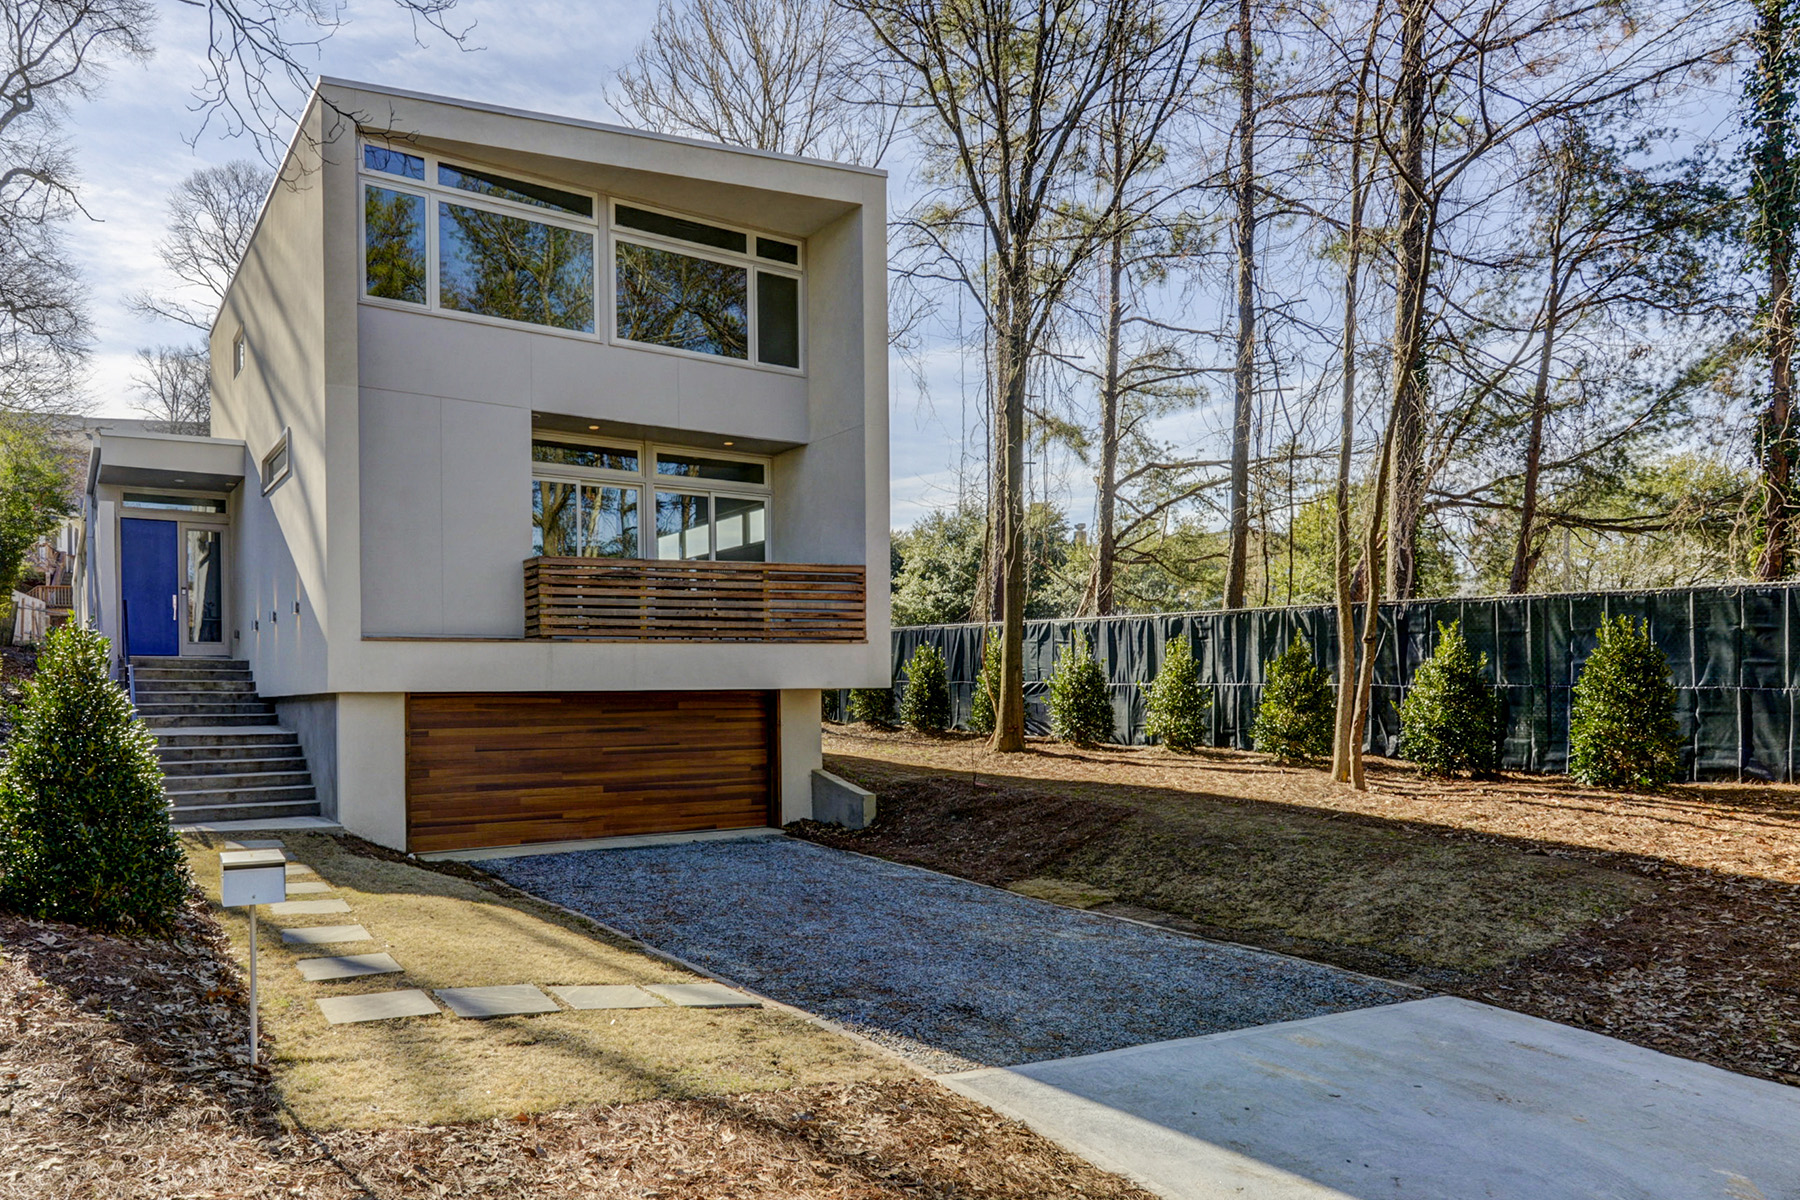 Single Family Home for Sale at Designer Home Steps from the Beltline and Ponce City Market 811 Belgrade Ave Atlanta, Georgia 30306 United States